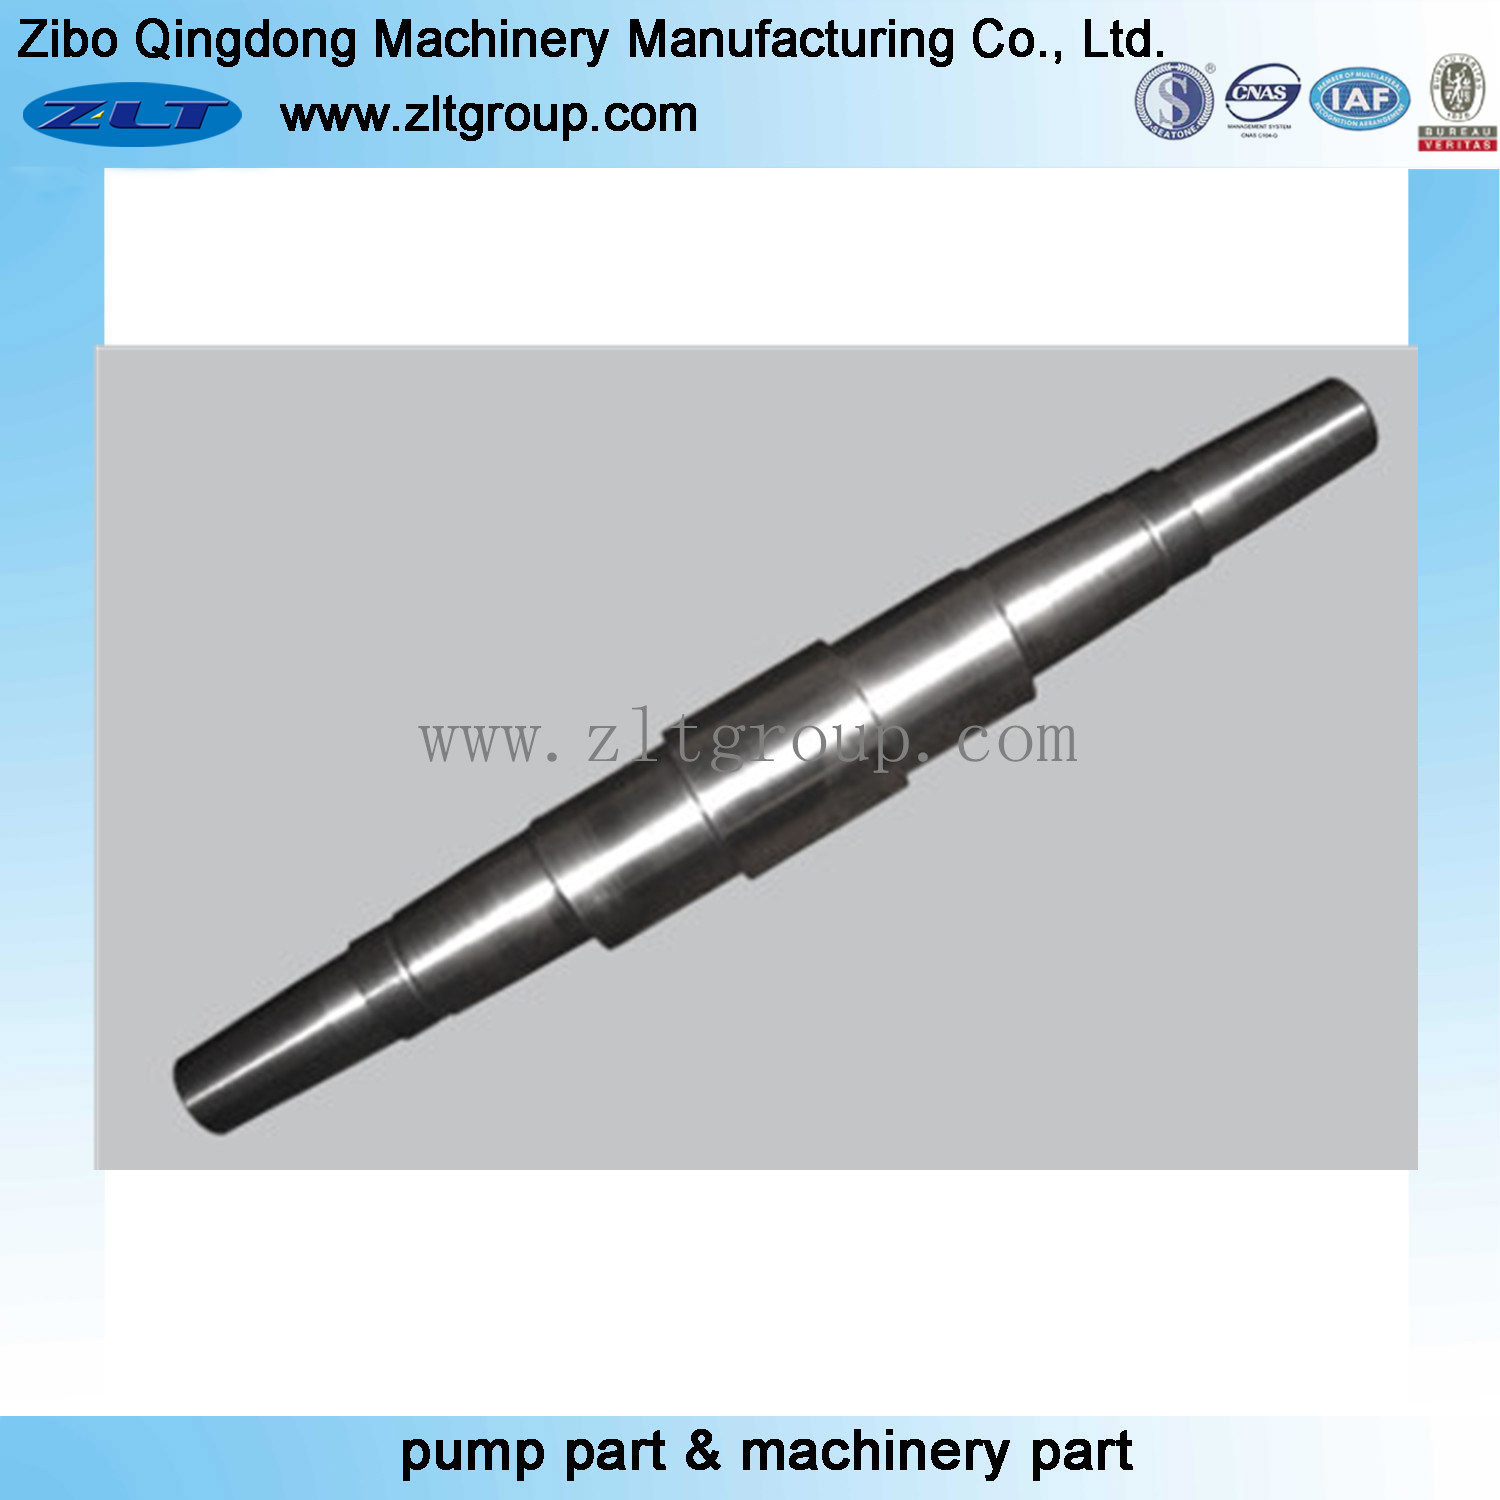 Centrifugal Pump Stainless Steel /4140 Pump Shaft with CNC Machining